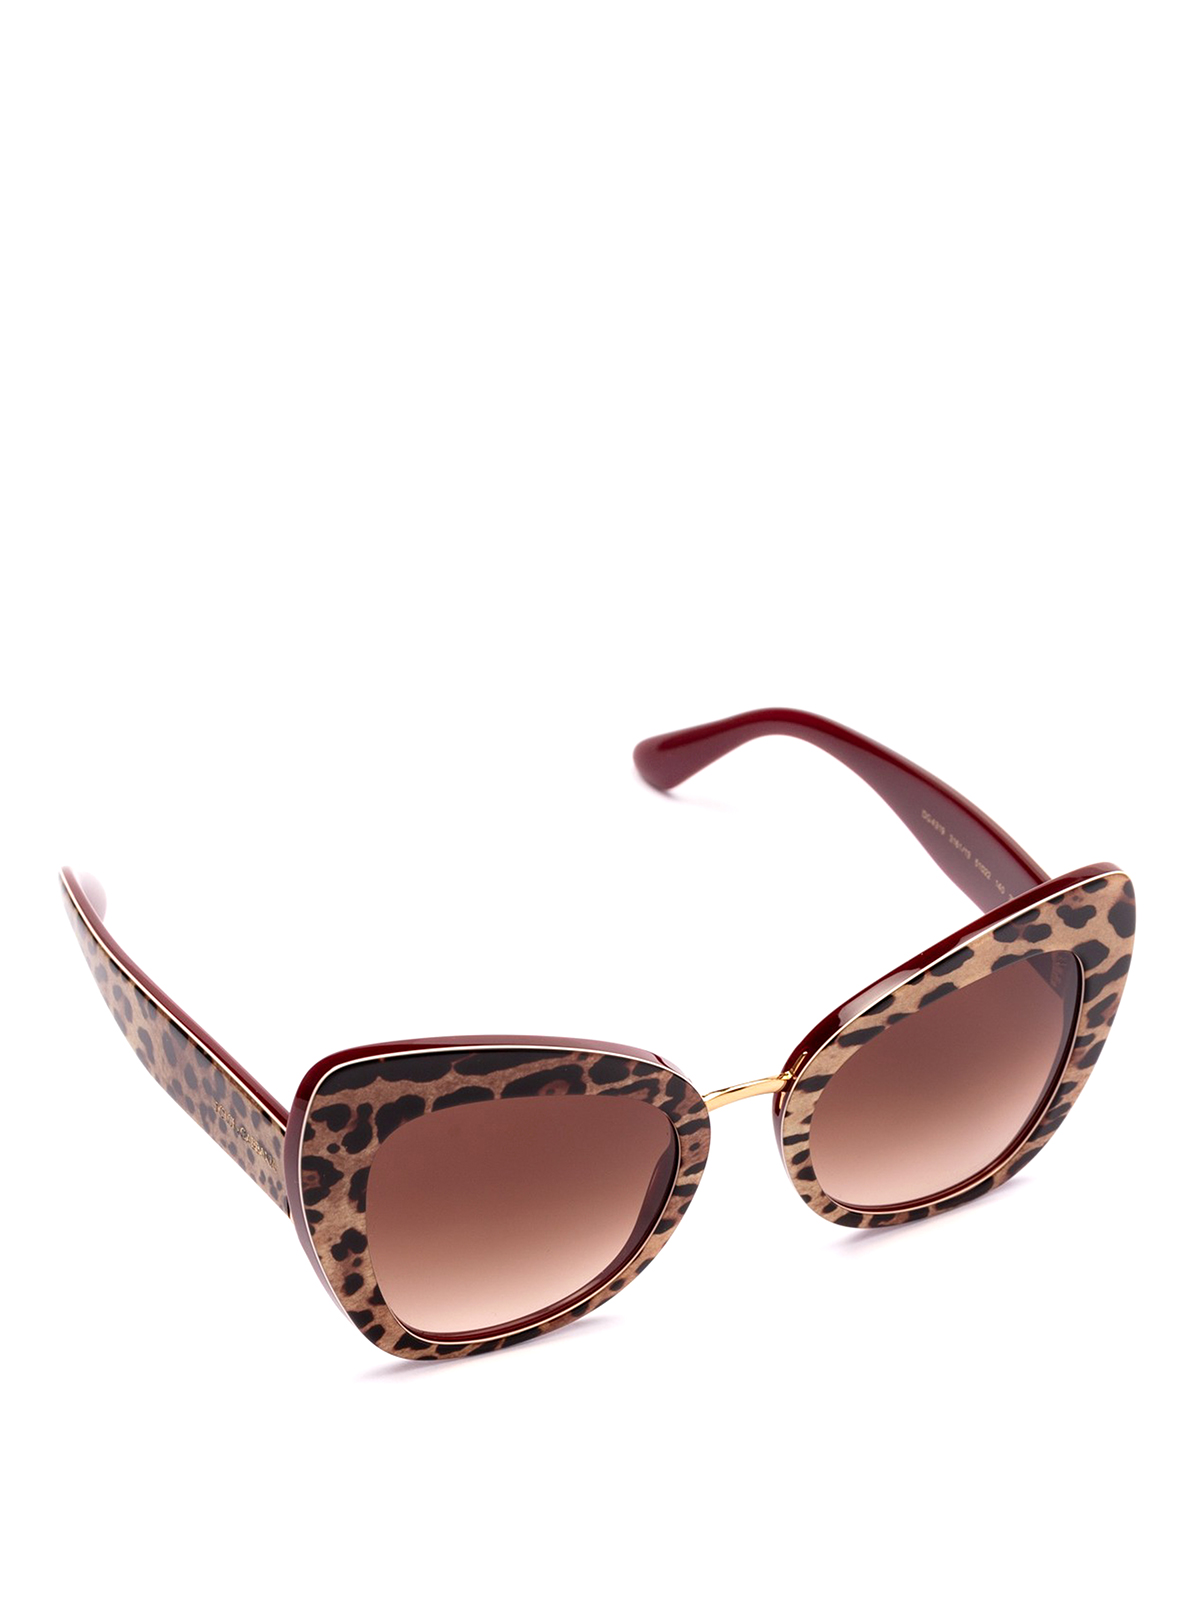 53f65fb8ef38 DOLCE & GABBANA: sunglasses - Animal print acetate cat eye sunglasses